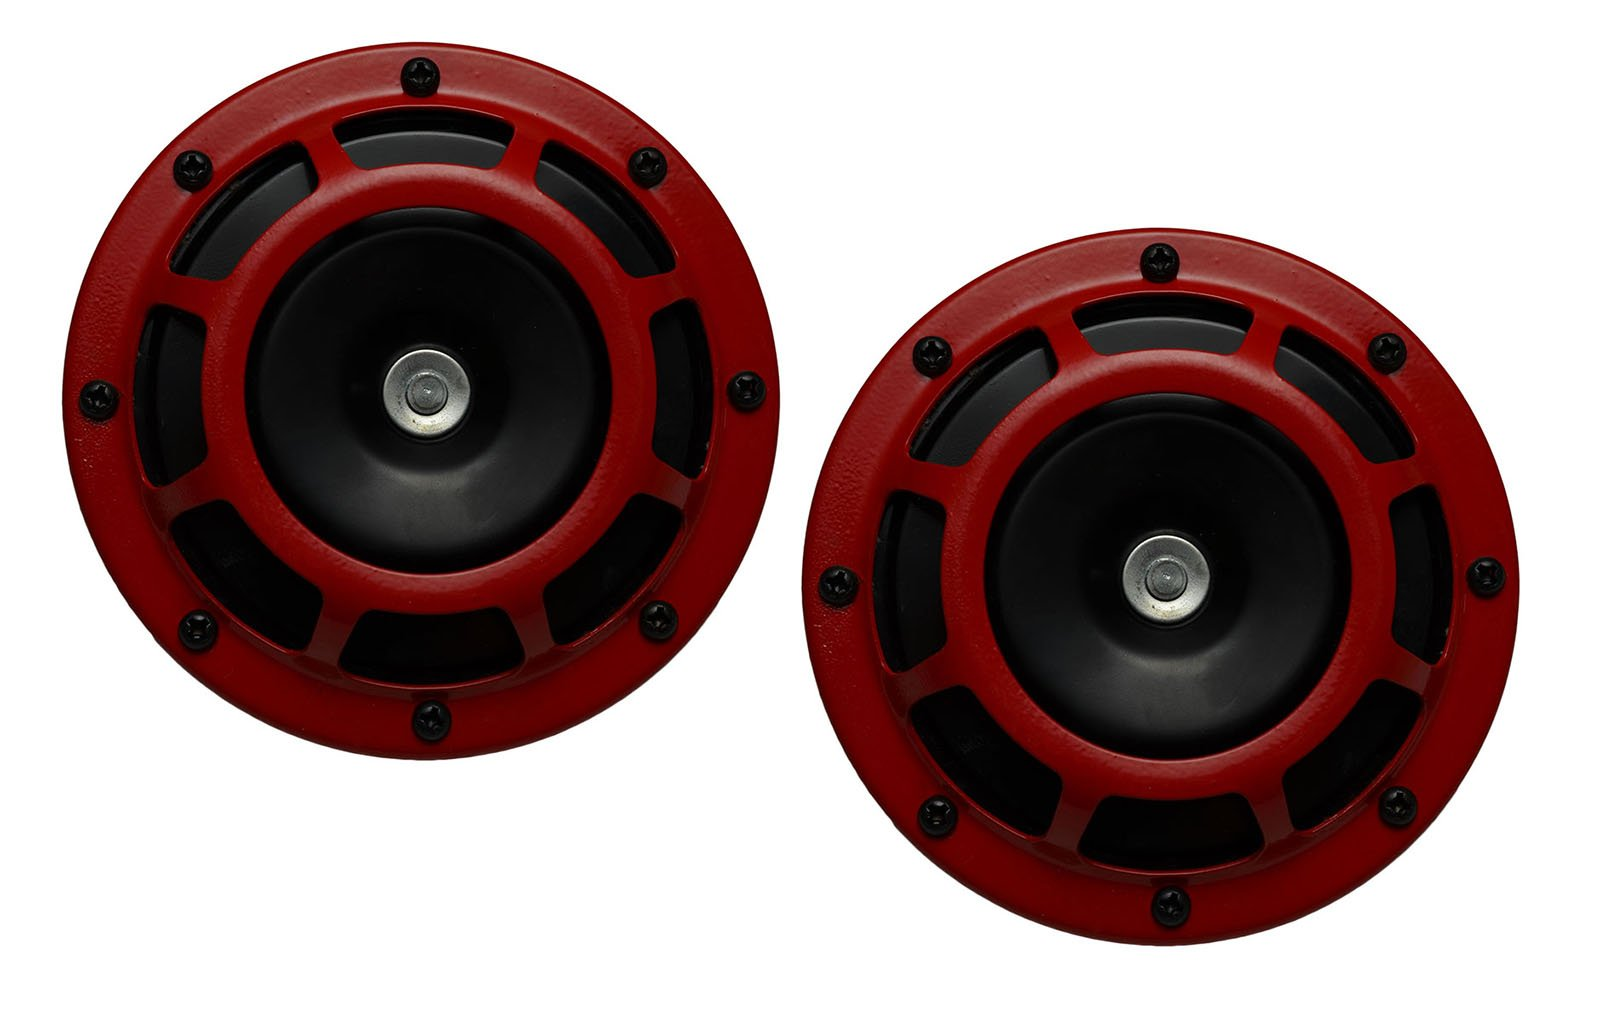 DUAL Super Tone LOUD Blast 139Db Universal Euro RED ROUND HORNS (Quantity 2) High Tone / Low Tone Twin Horn Kit with Bracket Pair Compact – Extremely LOUD for Car Bike Motorcycle Truck for Hyundai Genesis Coupe Tiburon Accent GS GLS SE 2 3 4 door Veloster Turbo Turbocharged Coupe Sedan Hatchback